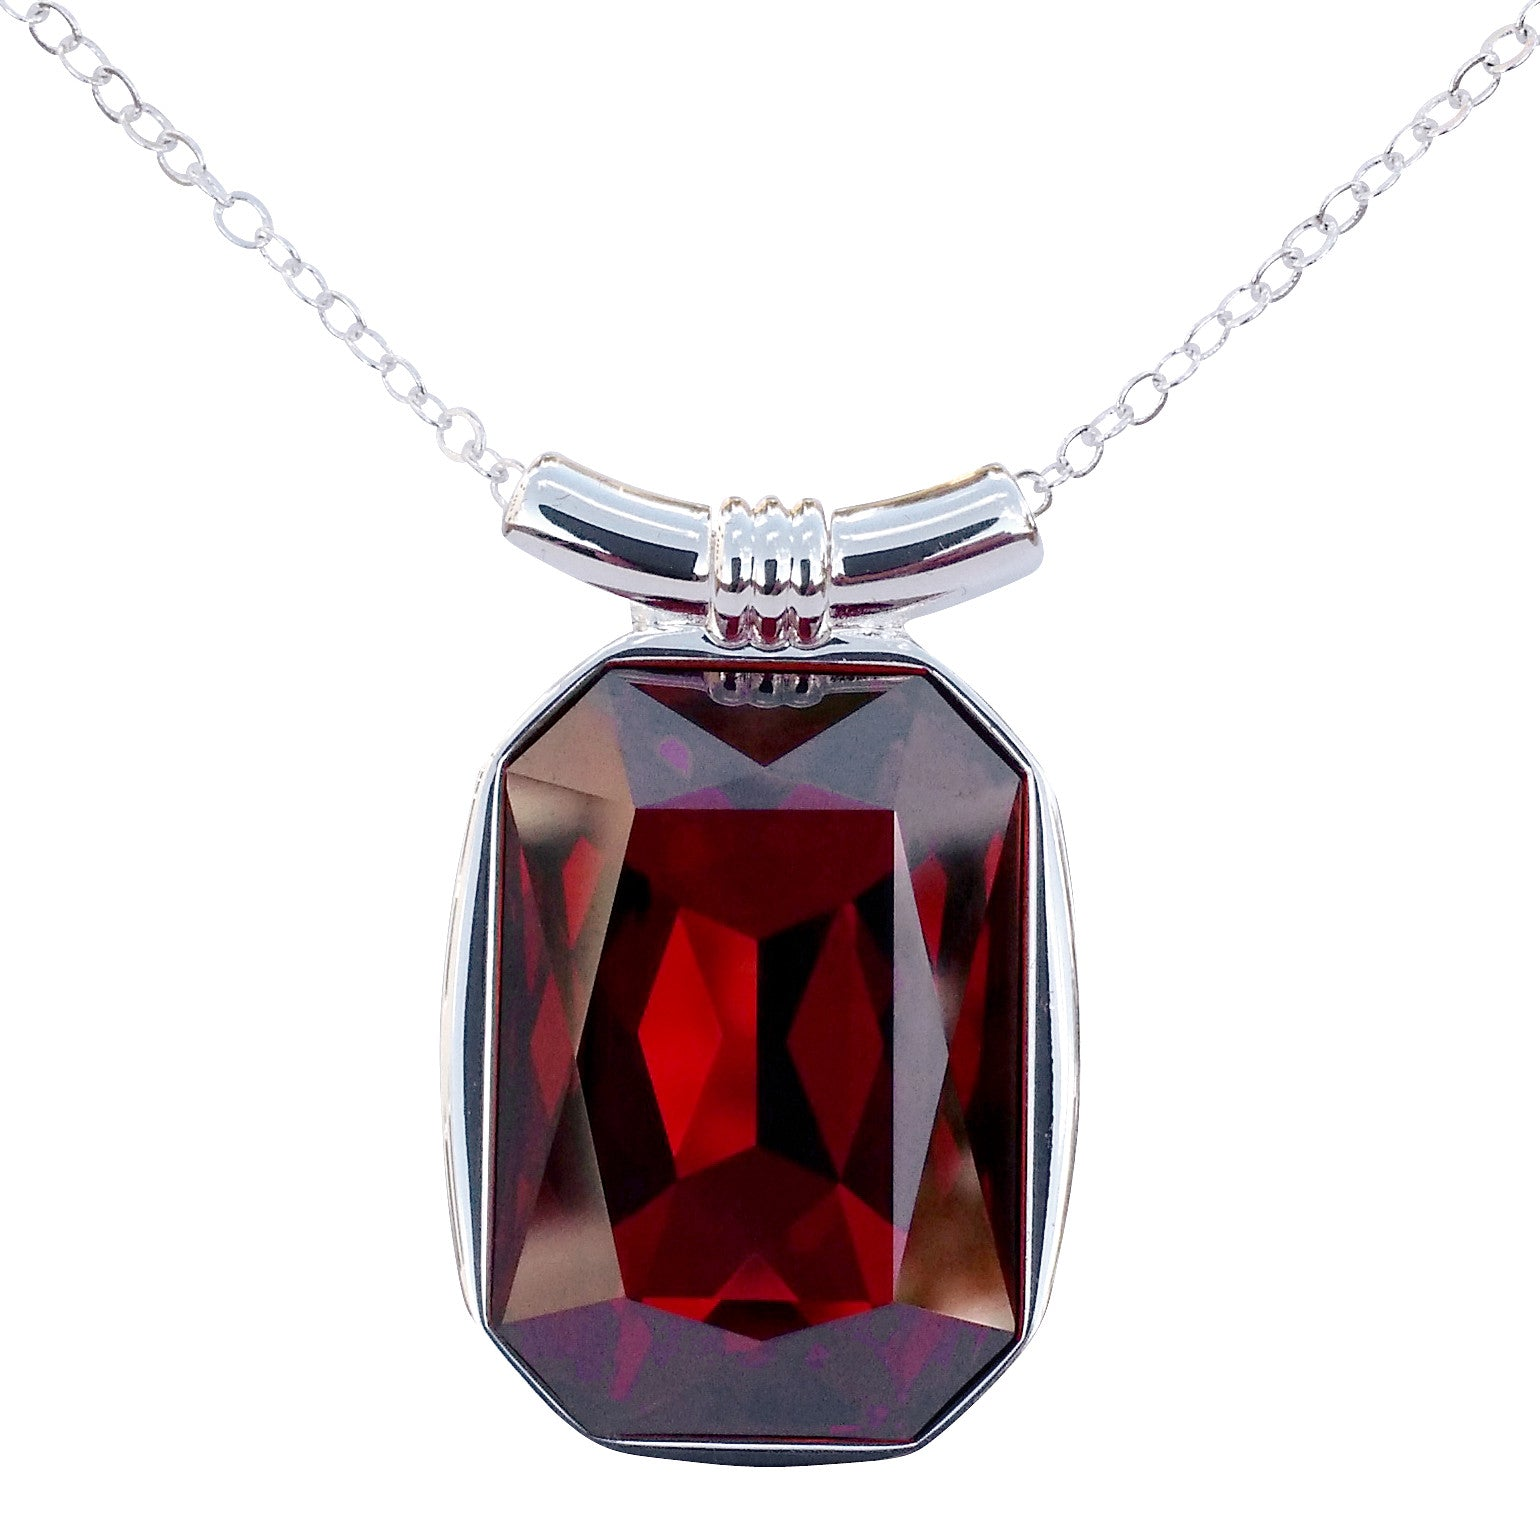 gold watch pyrope red almandine certified pendant gia garnet vvs necklace diamond white